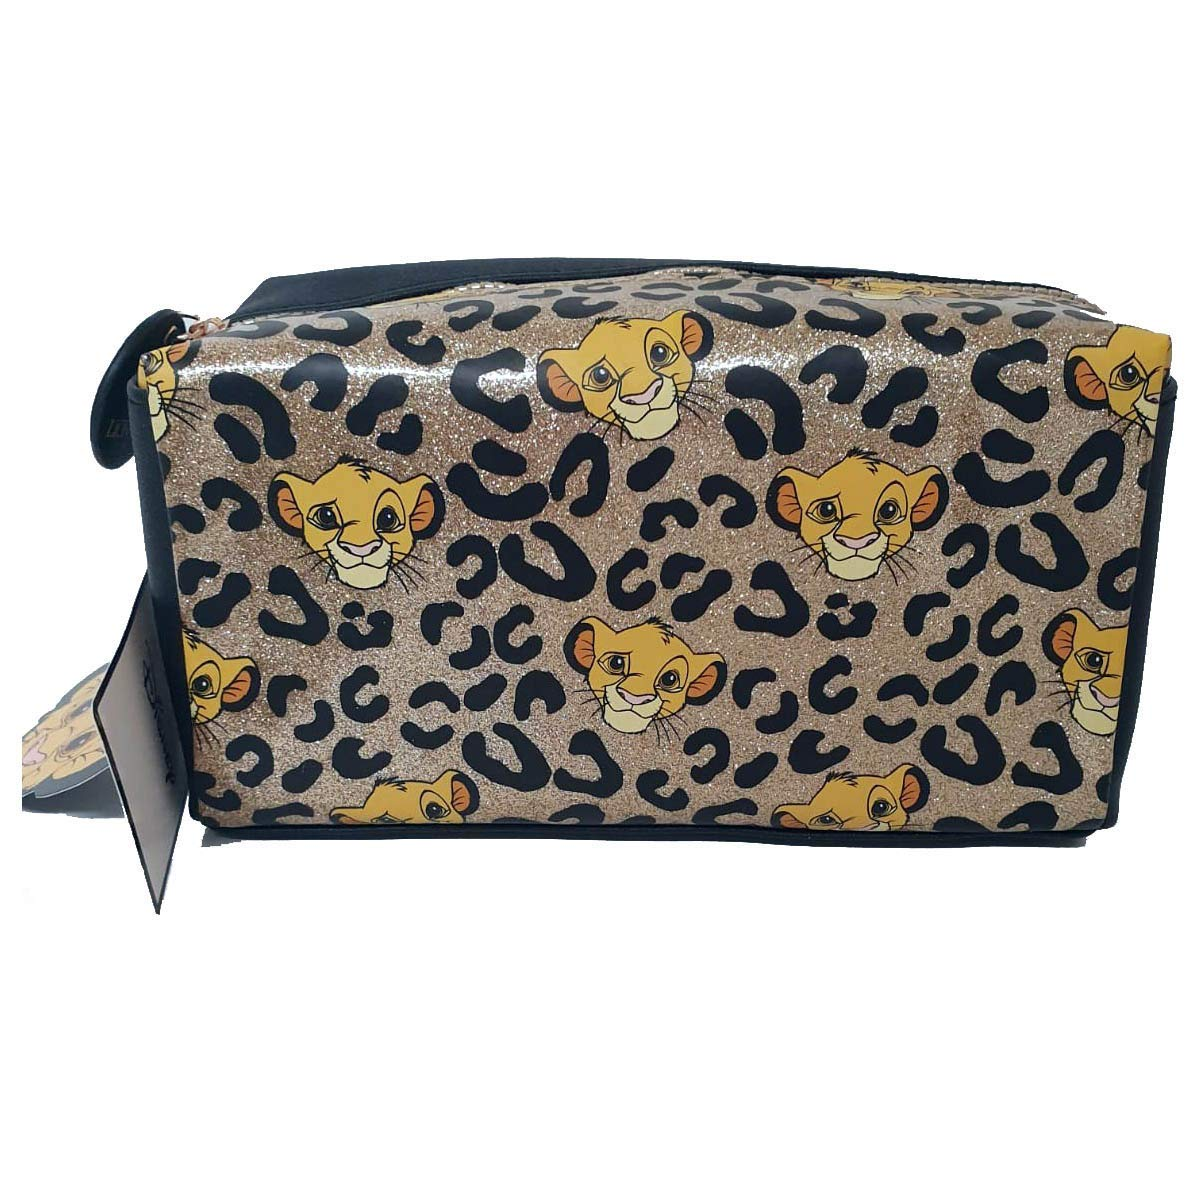 Disney The Lion King Neceser/Maquillaje Bolsa/Monedero Mujer ...